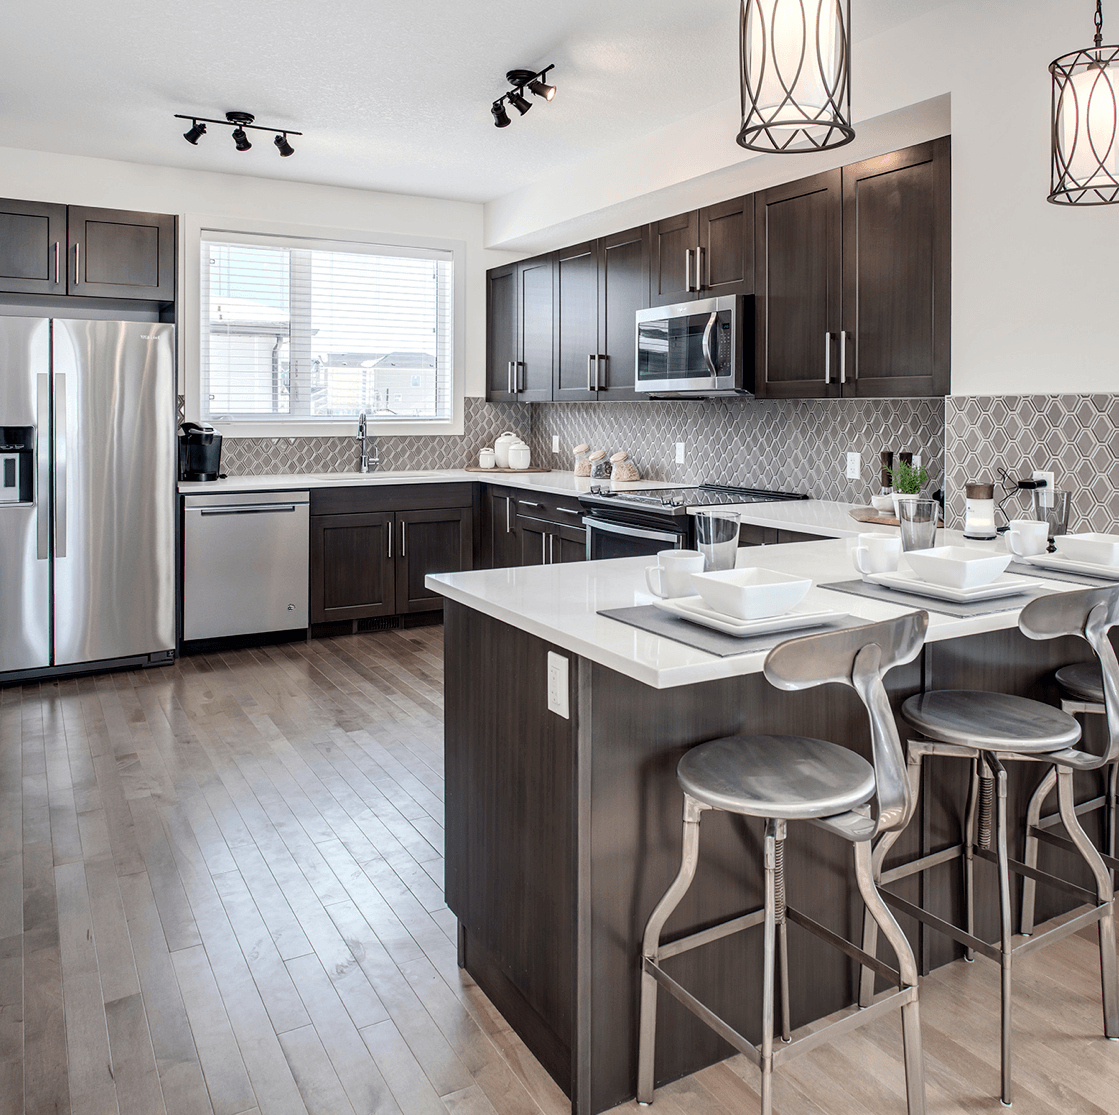 Comparing Value: Choosing the Right Options To Personalize Your Home Large Kitchen Image